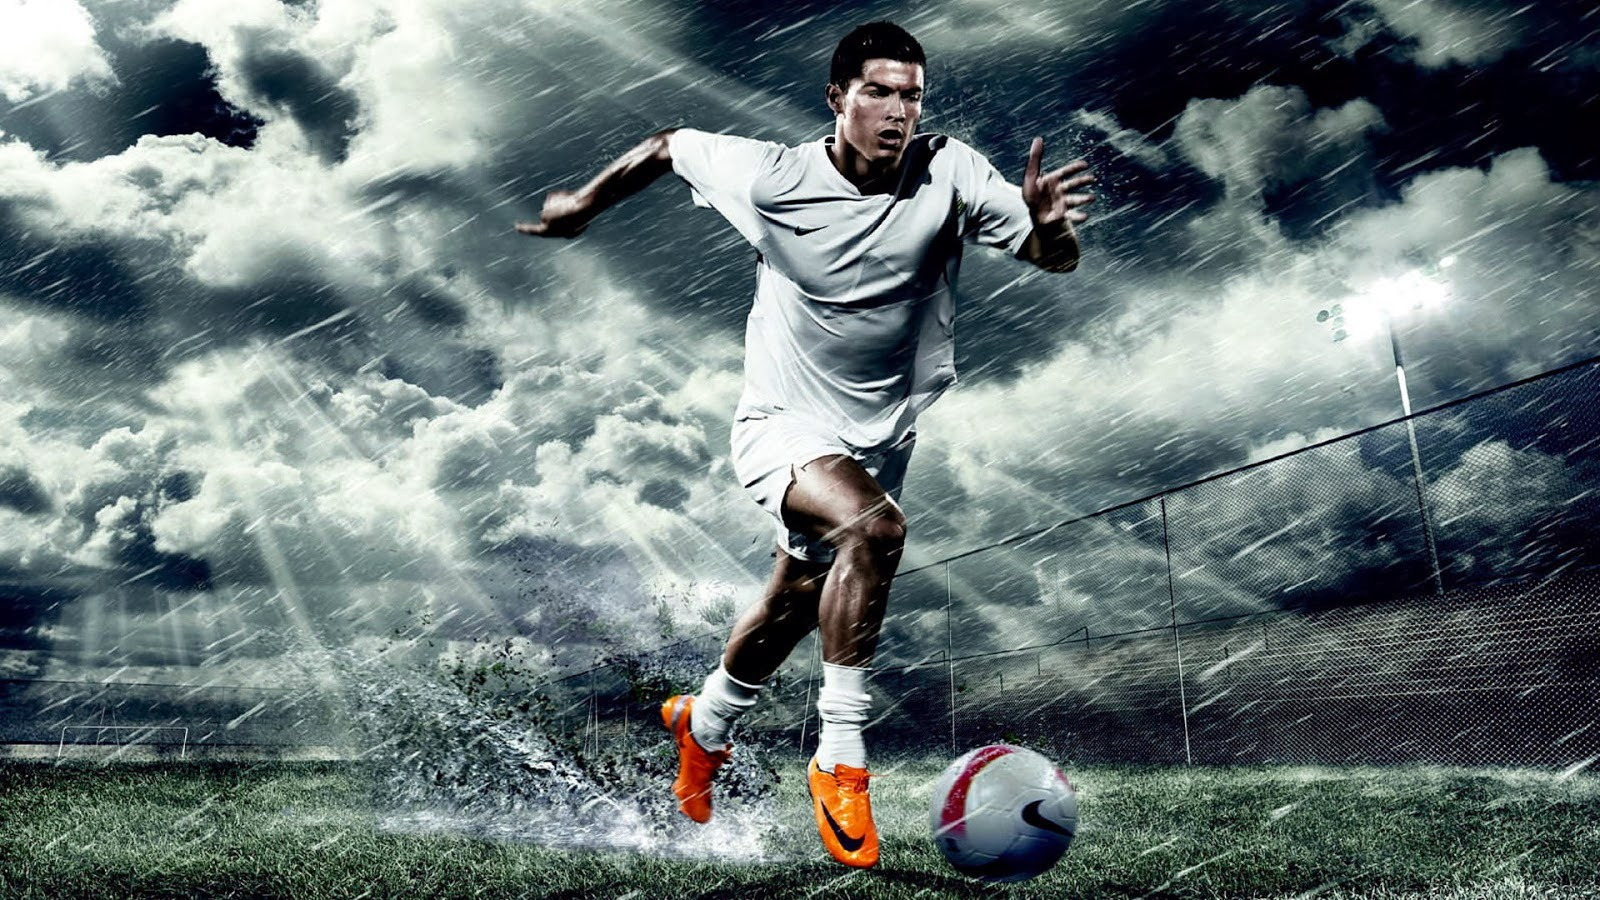 3d Cartoon Wallpapers Download Cristiano Ronaldo Hd Wallpaper Images Pics Hd Wallpapers